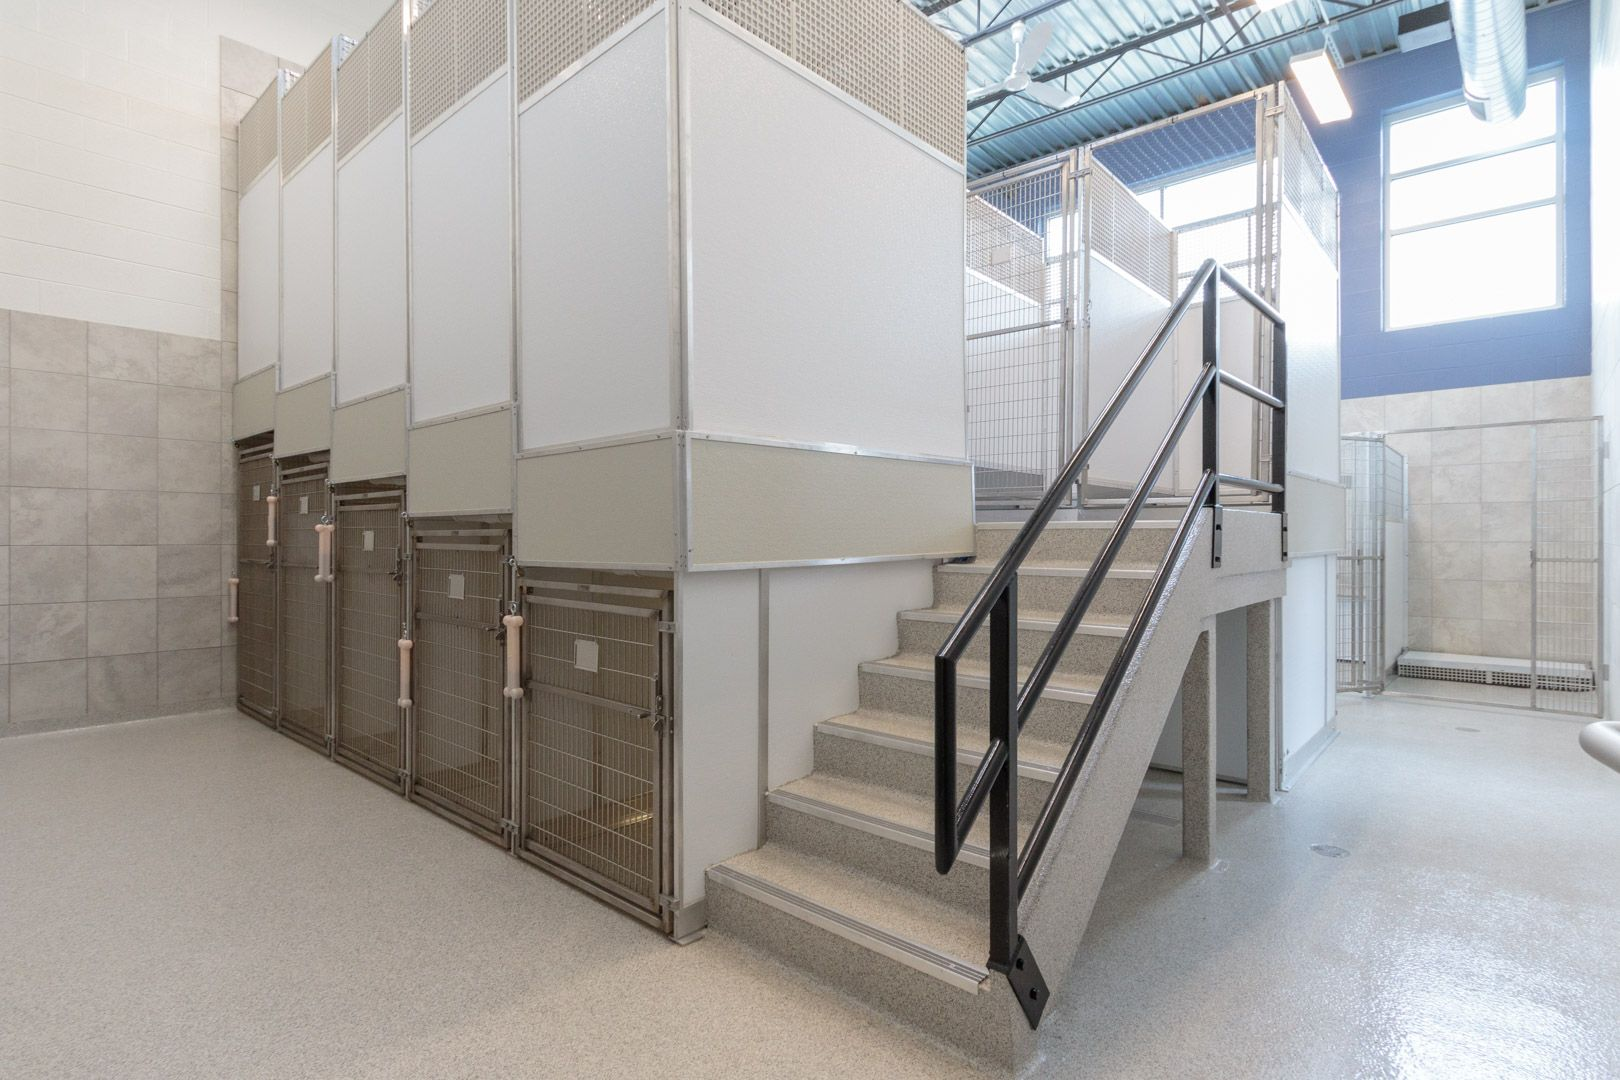 Coyne Veterinary Center One Of Our Dog Boarding Rooms With Mason Company Double Deck System Kennels Hospital Design Building Design Veterinary